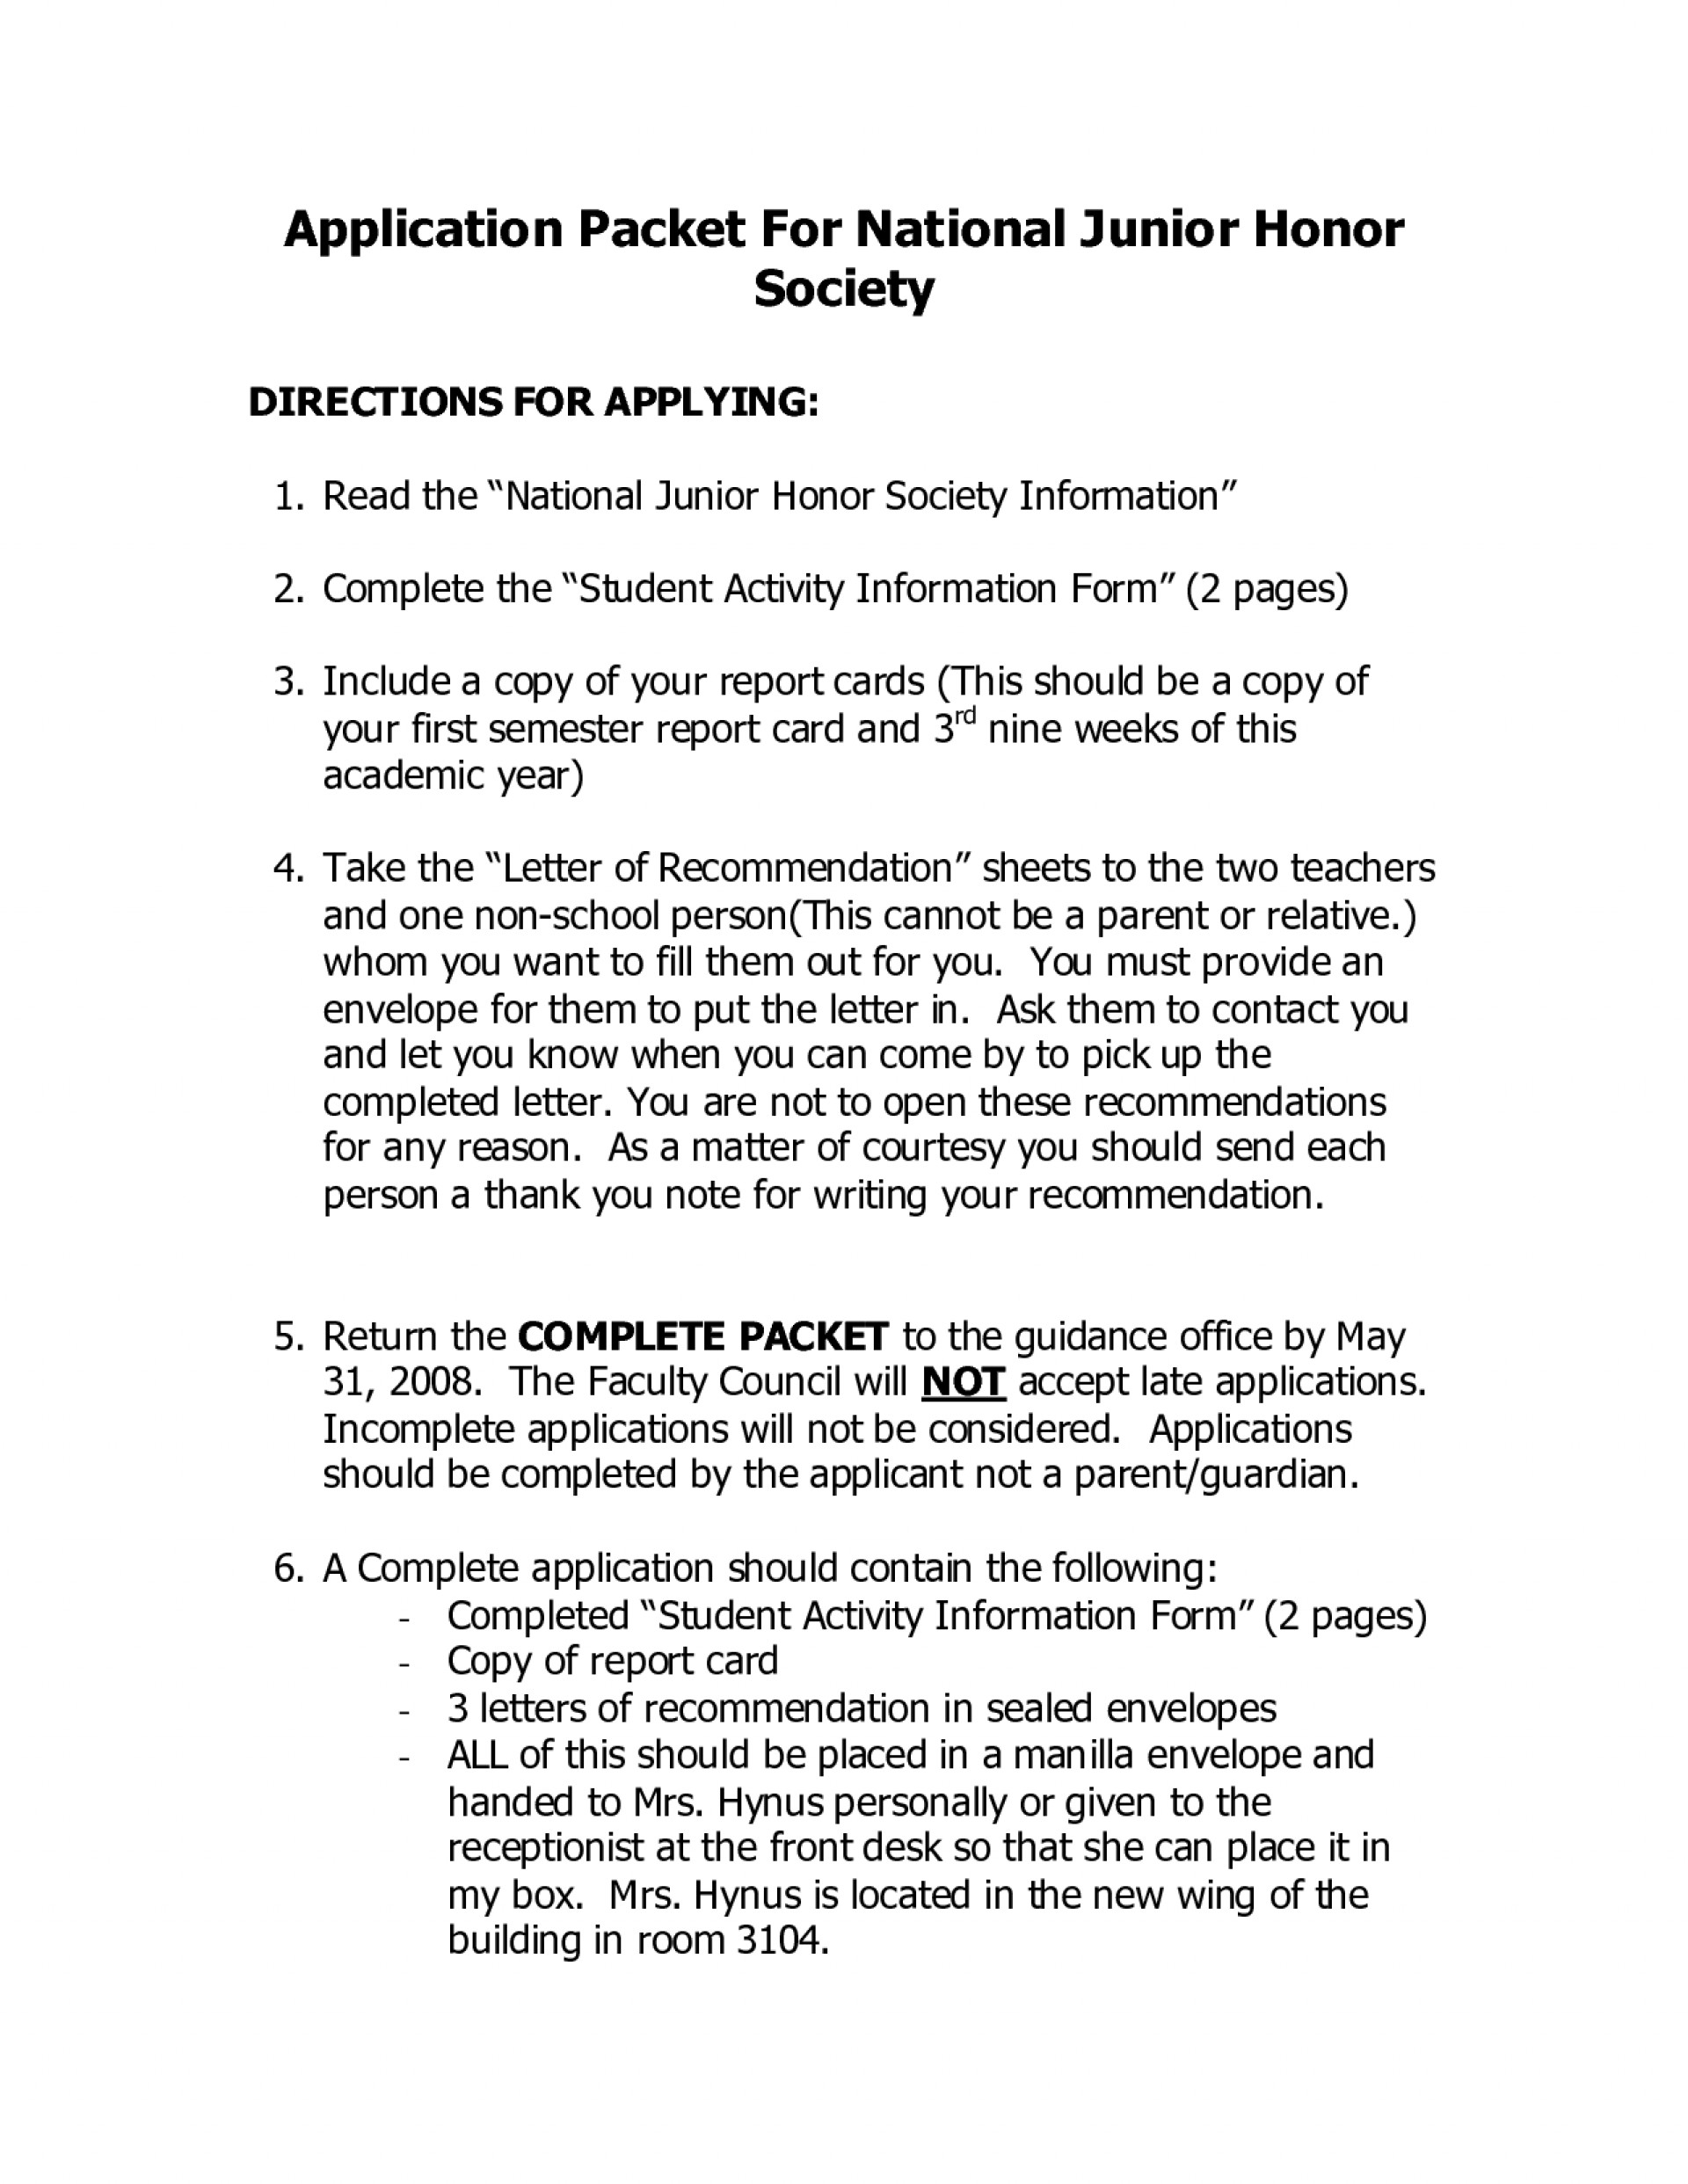 006 Essay Example National Honor Society Letter Of Recommendation For High School Student Essays L Outstanding Application Structure Examples 1920